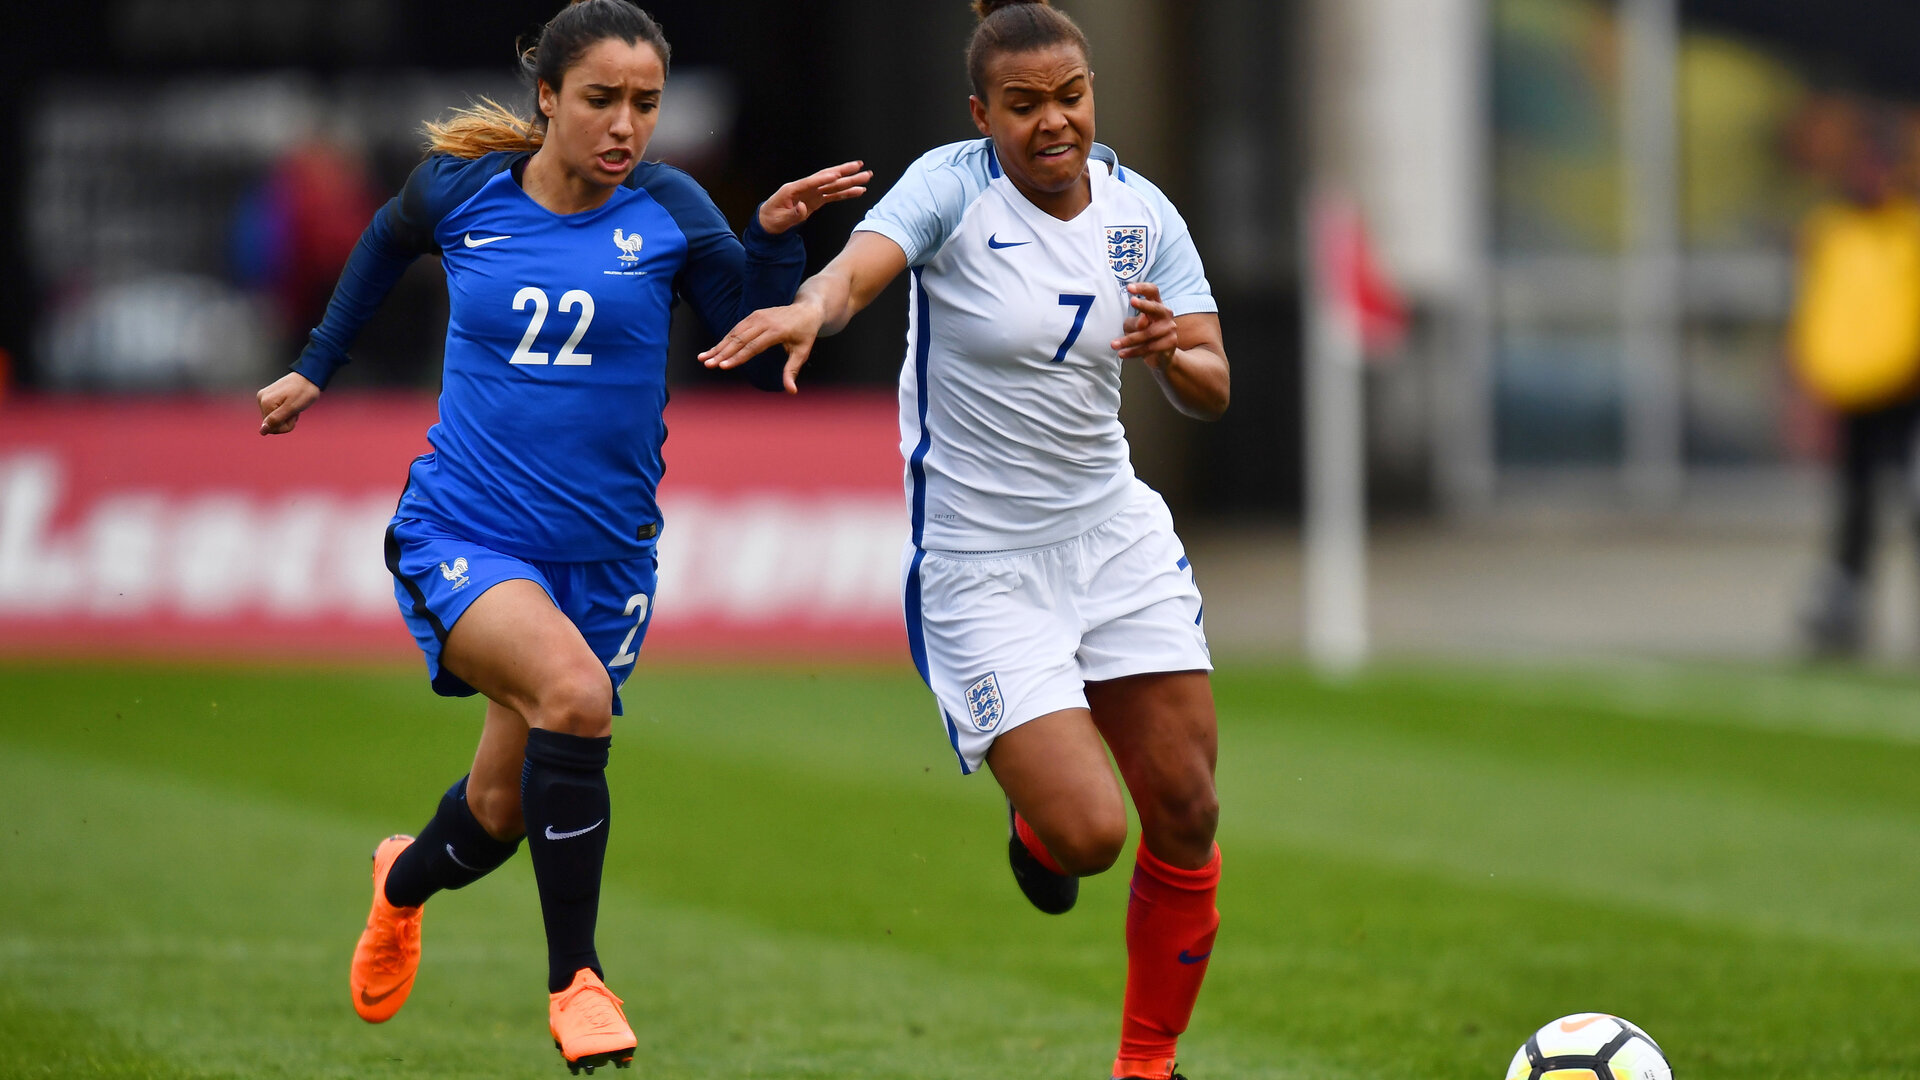 COLUMBUS, OH - MARCH 1:  Sakina Karchaoui #22 of France and Nikita Parris #7 of England battle for control of the ball on March 1, 2018 at MAPFRE Stadium in Columbus, Ohio. England defeated France 4-1.  (Photo by Jamie Sabau/Getty Images)